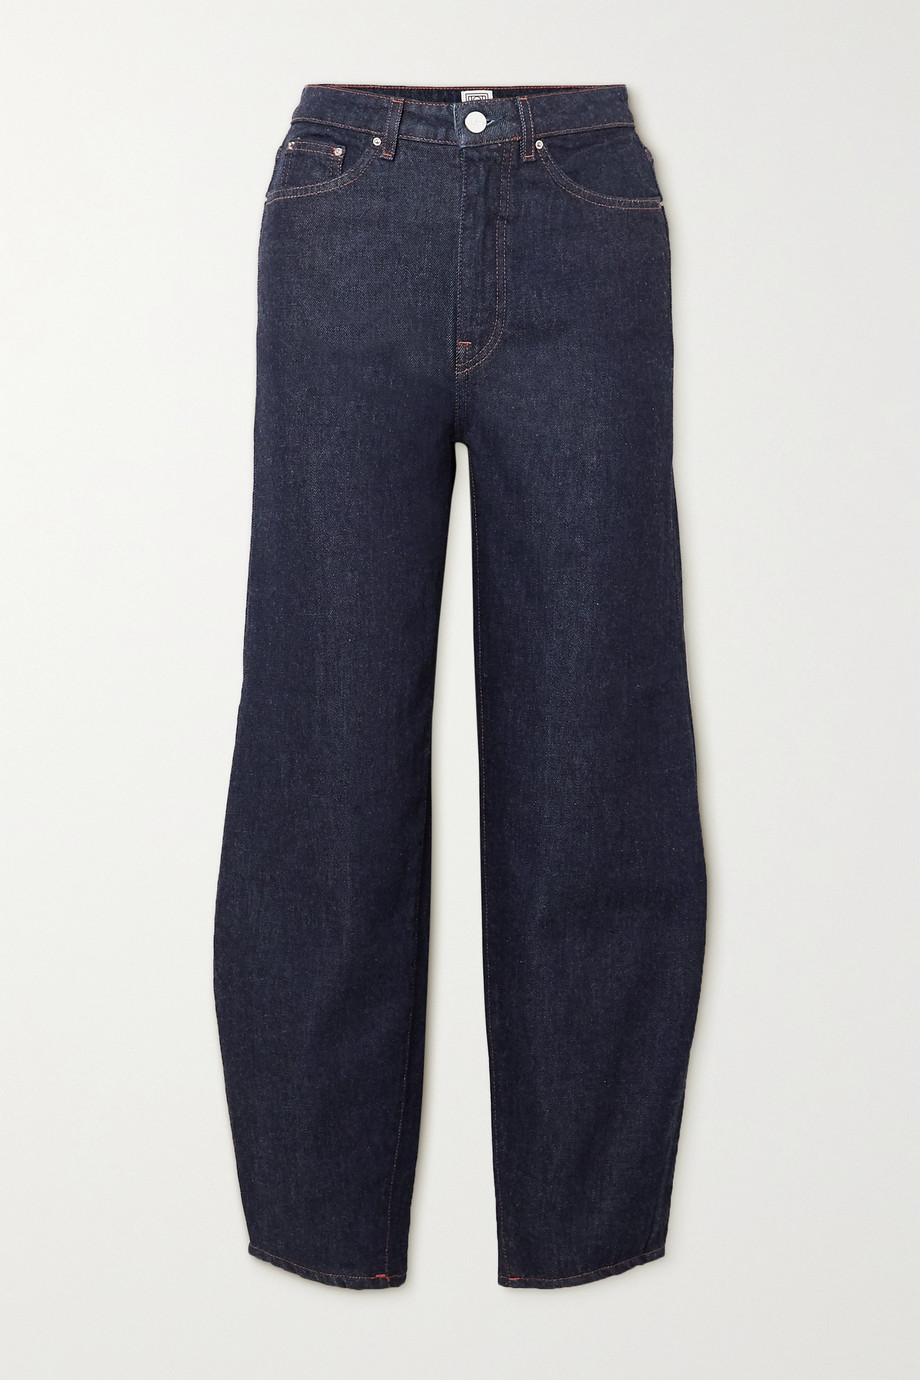 TOTÊME High-rise tapered jeans